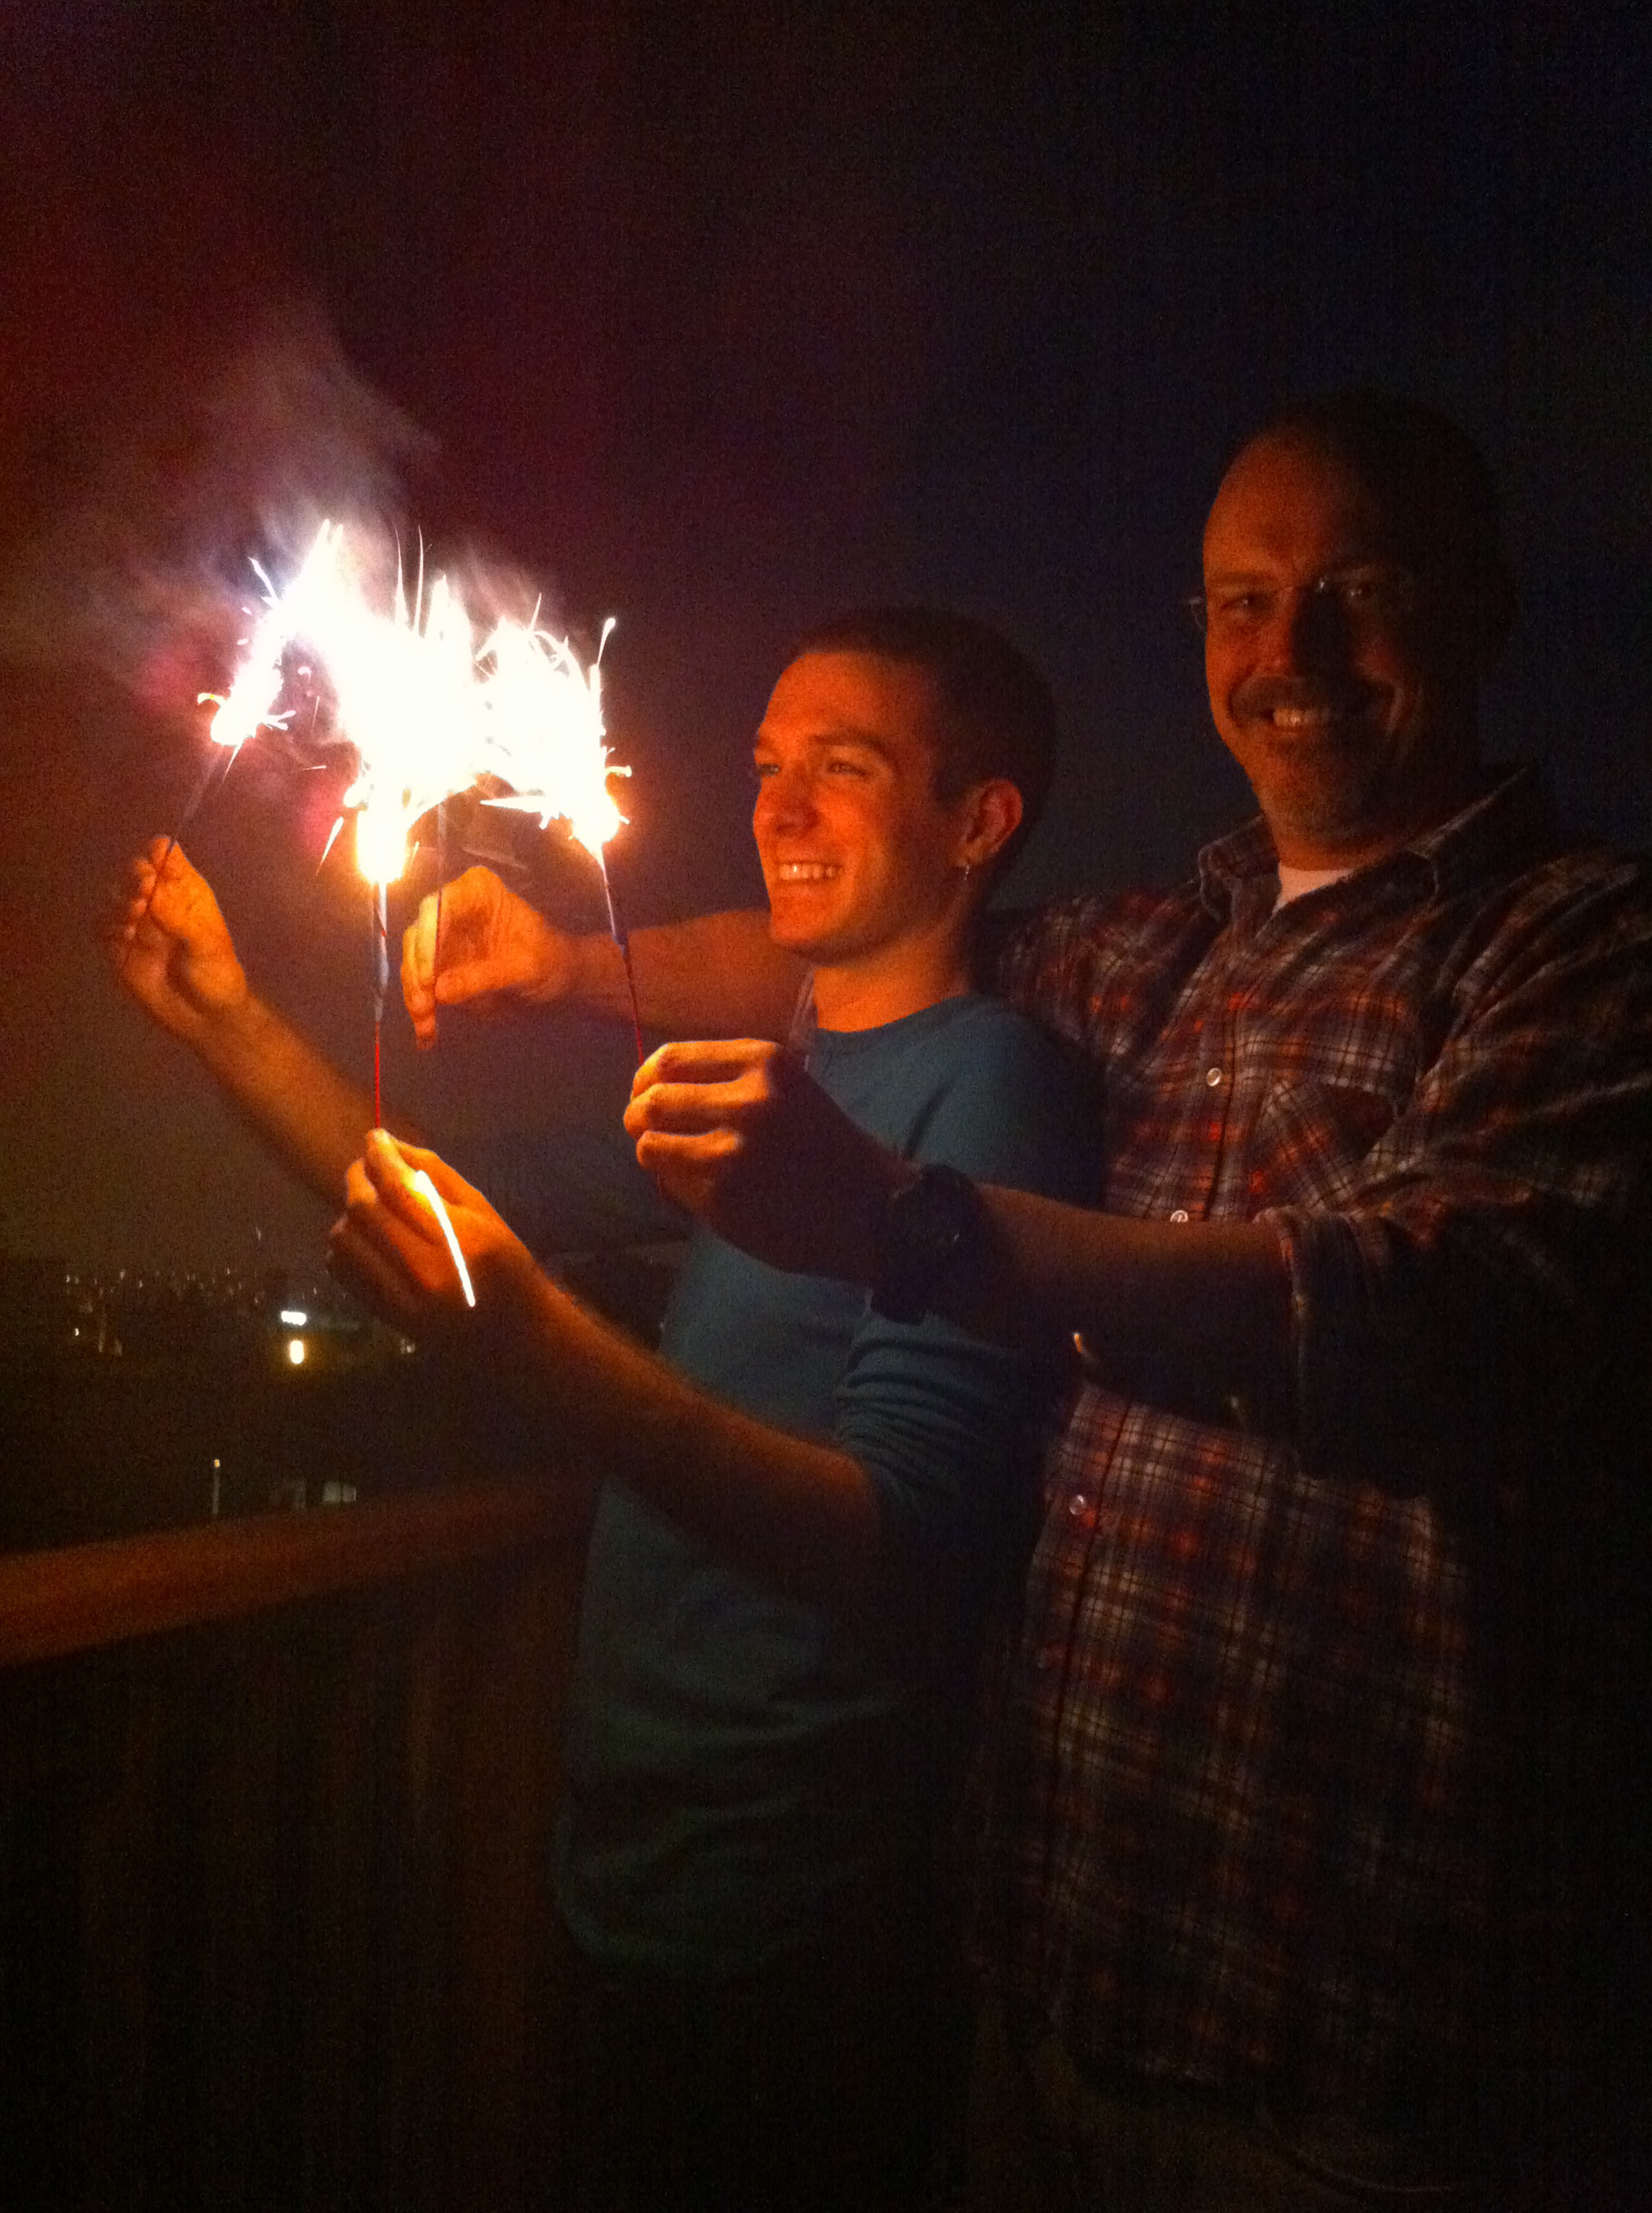 Jonathan Nye and Matthew Sachs fly their sparklers